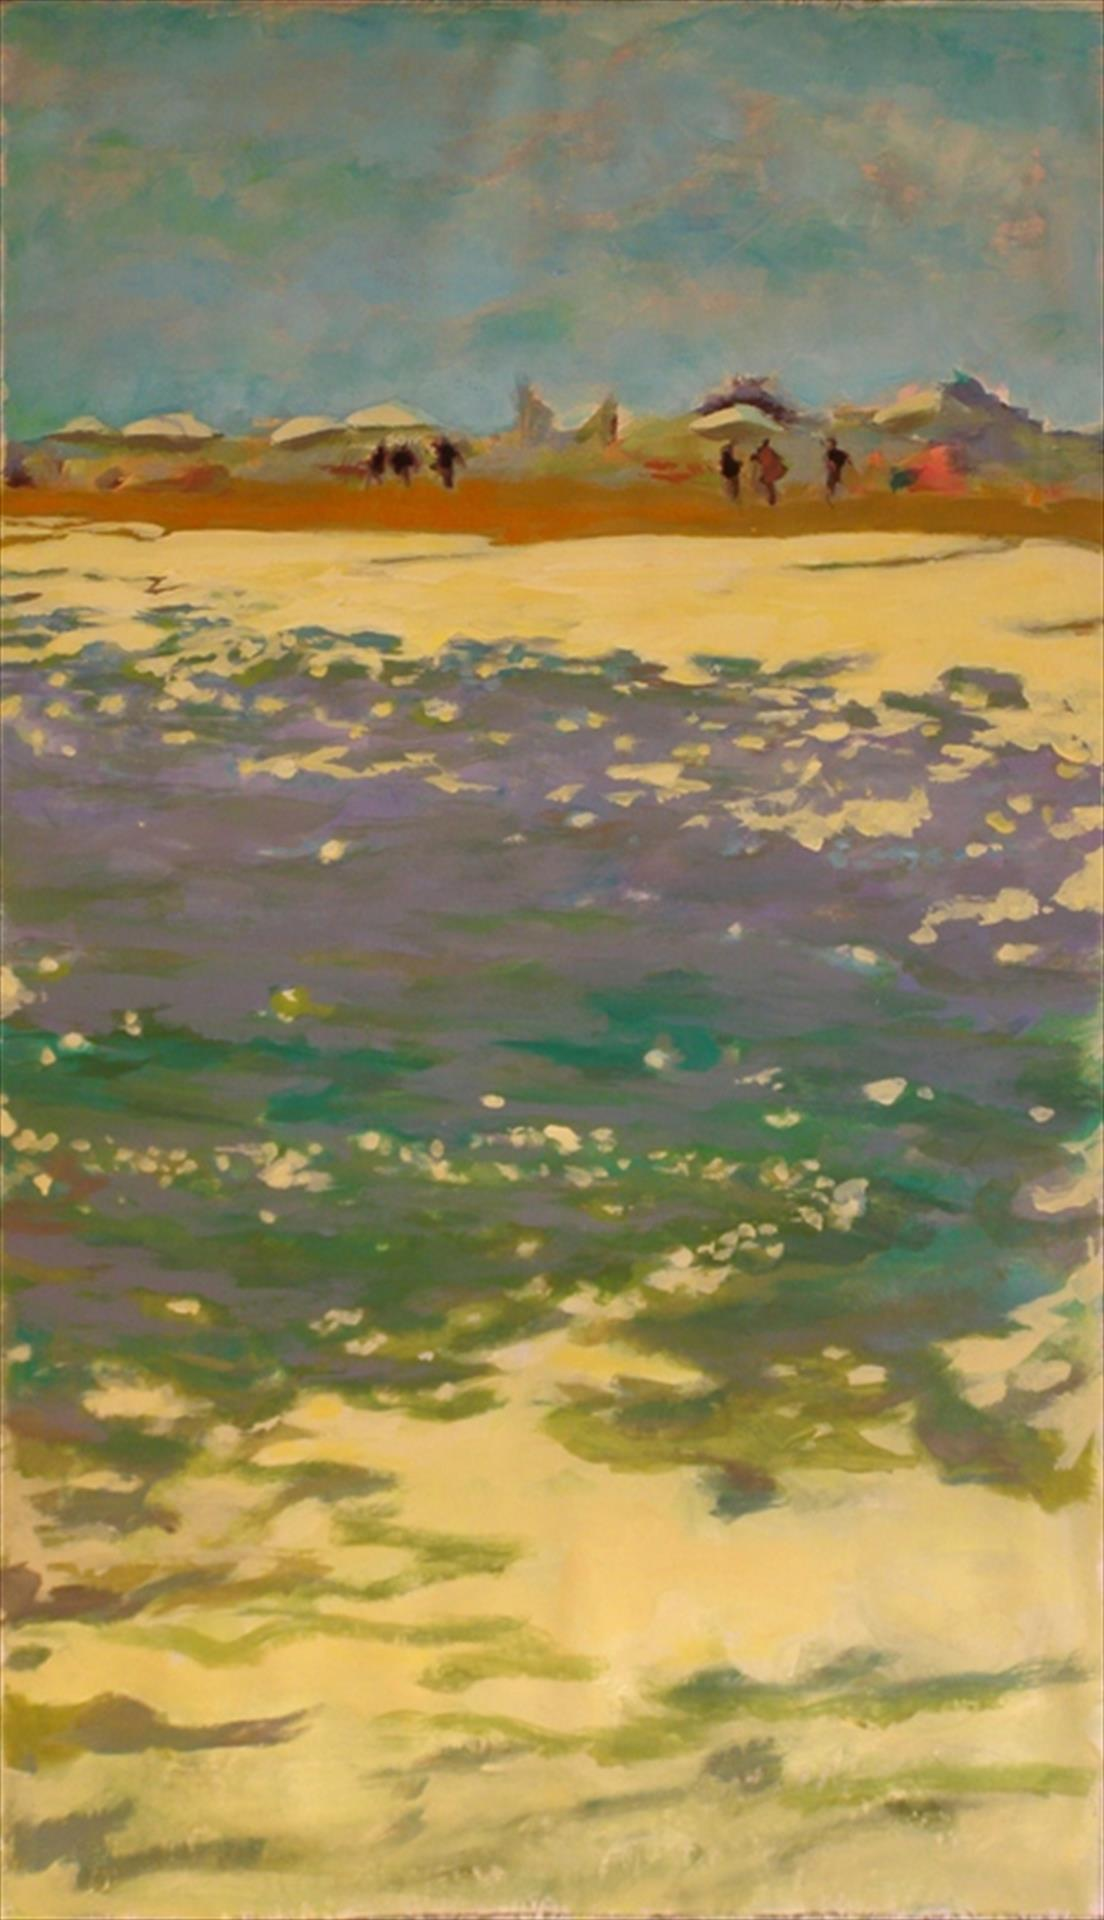 out of focus painting from ocean looking towards beach